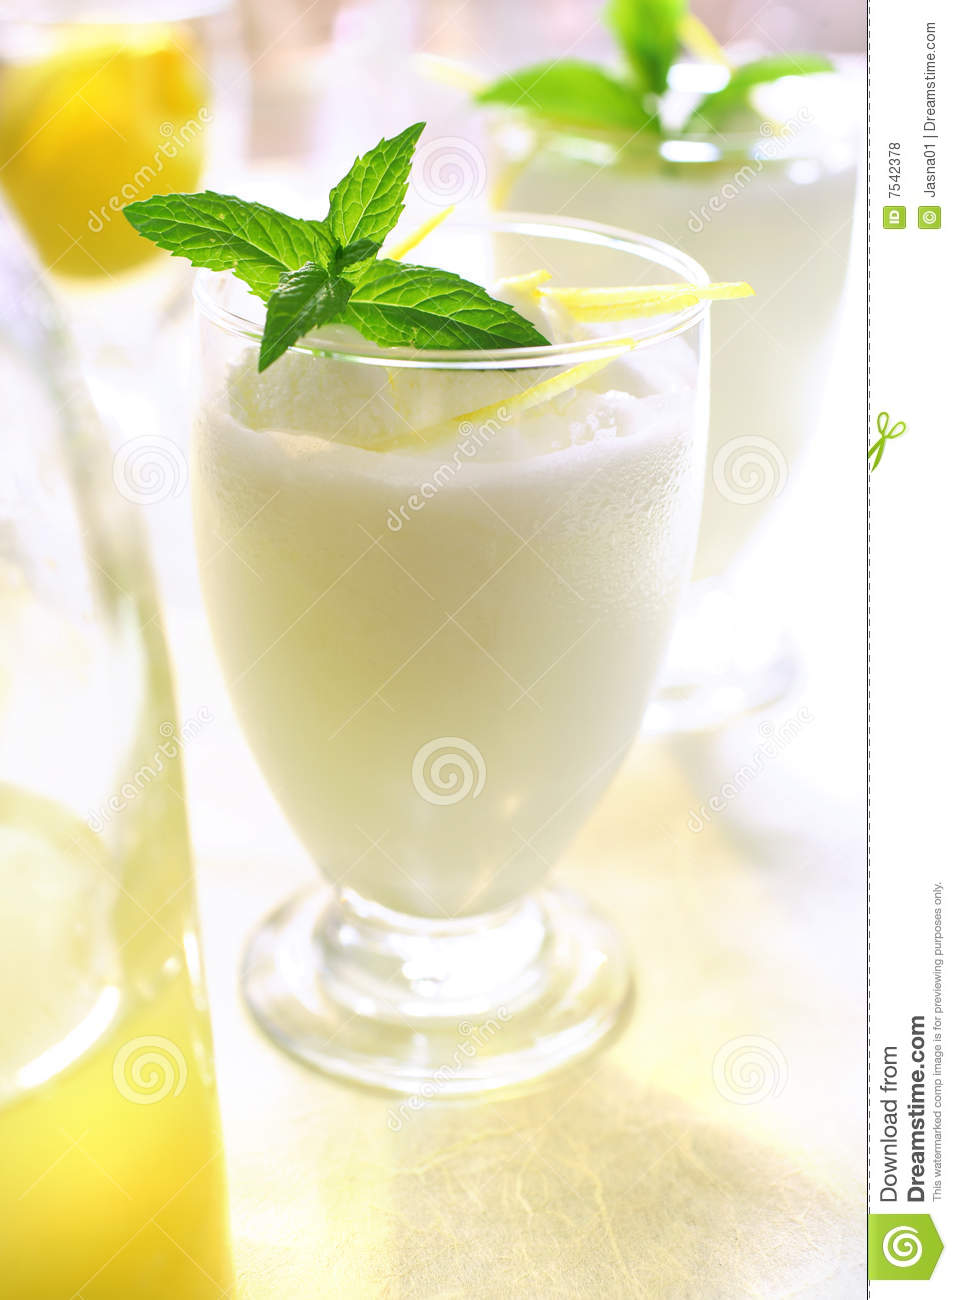 Lemon sorbet in glass